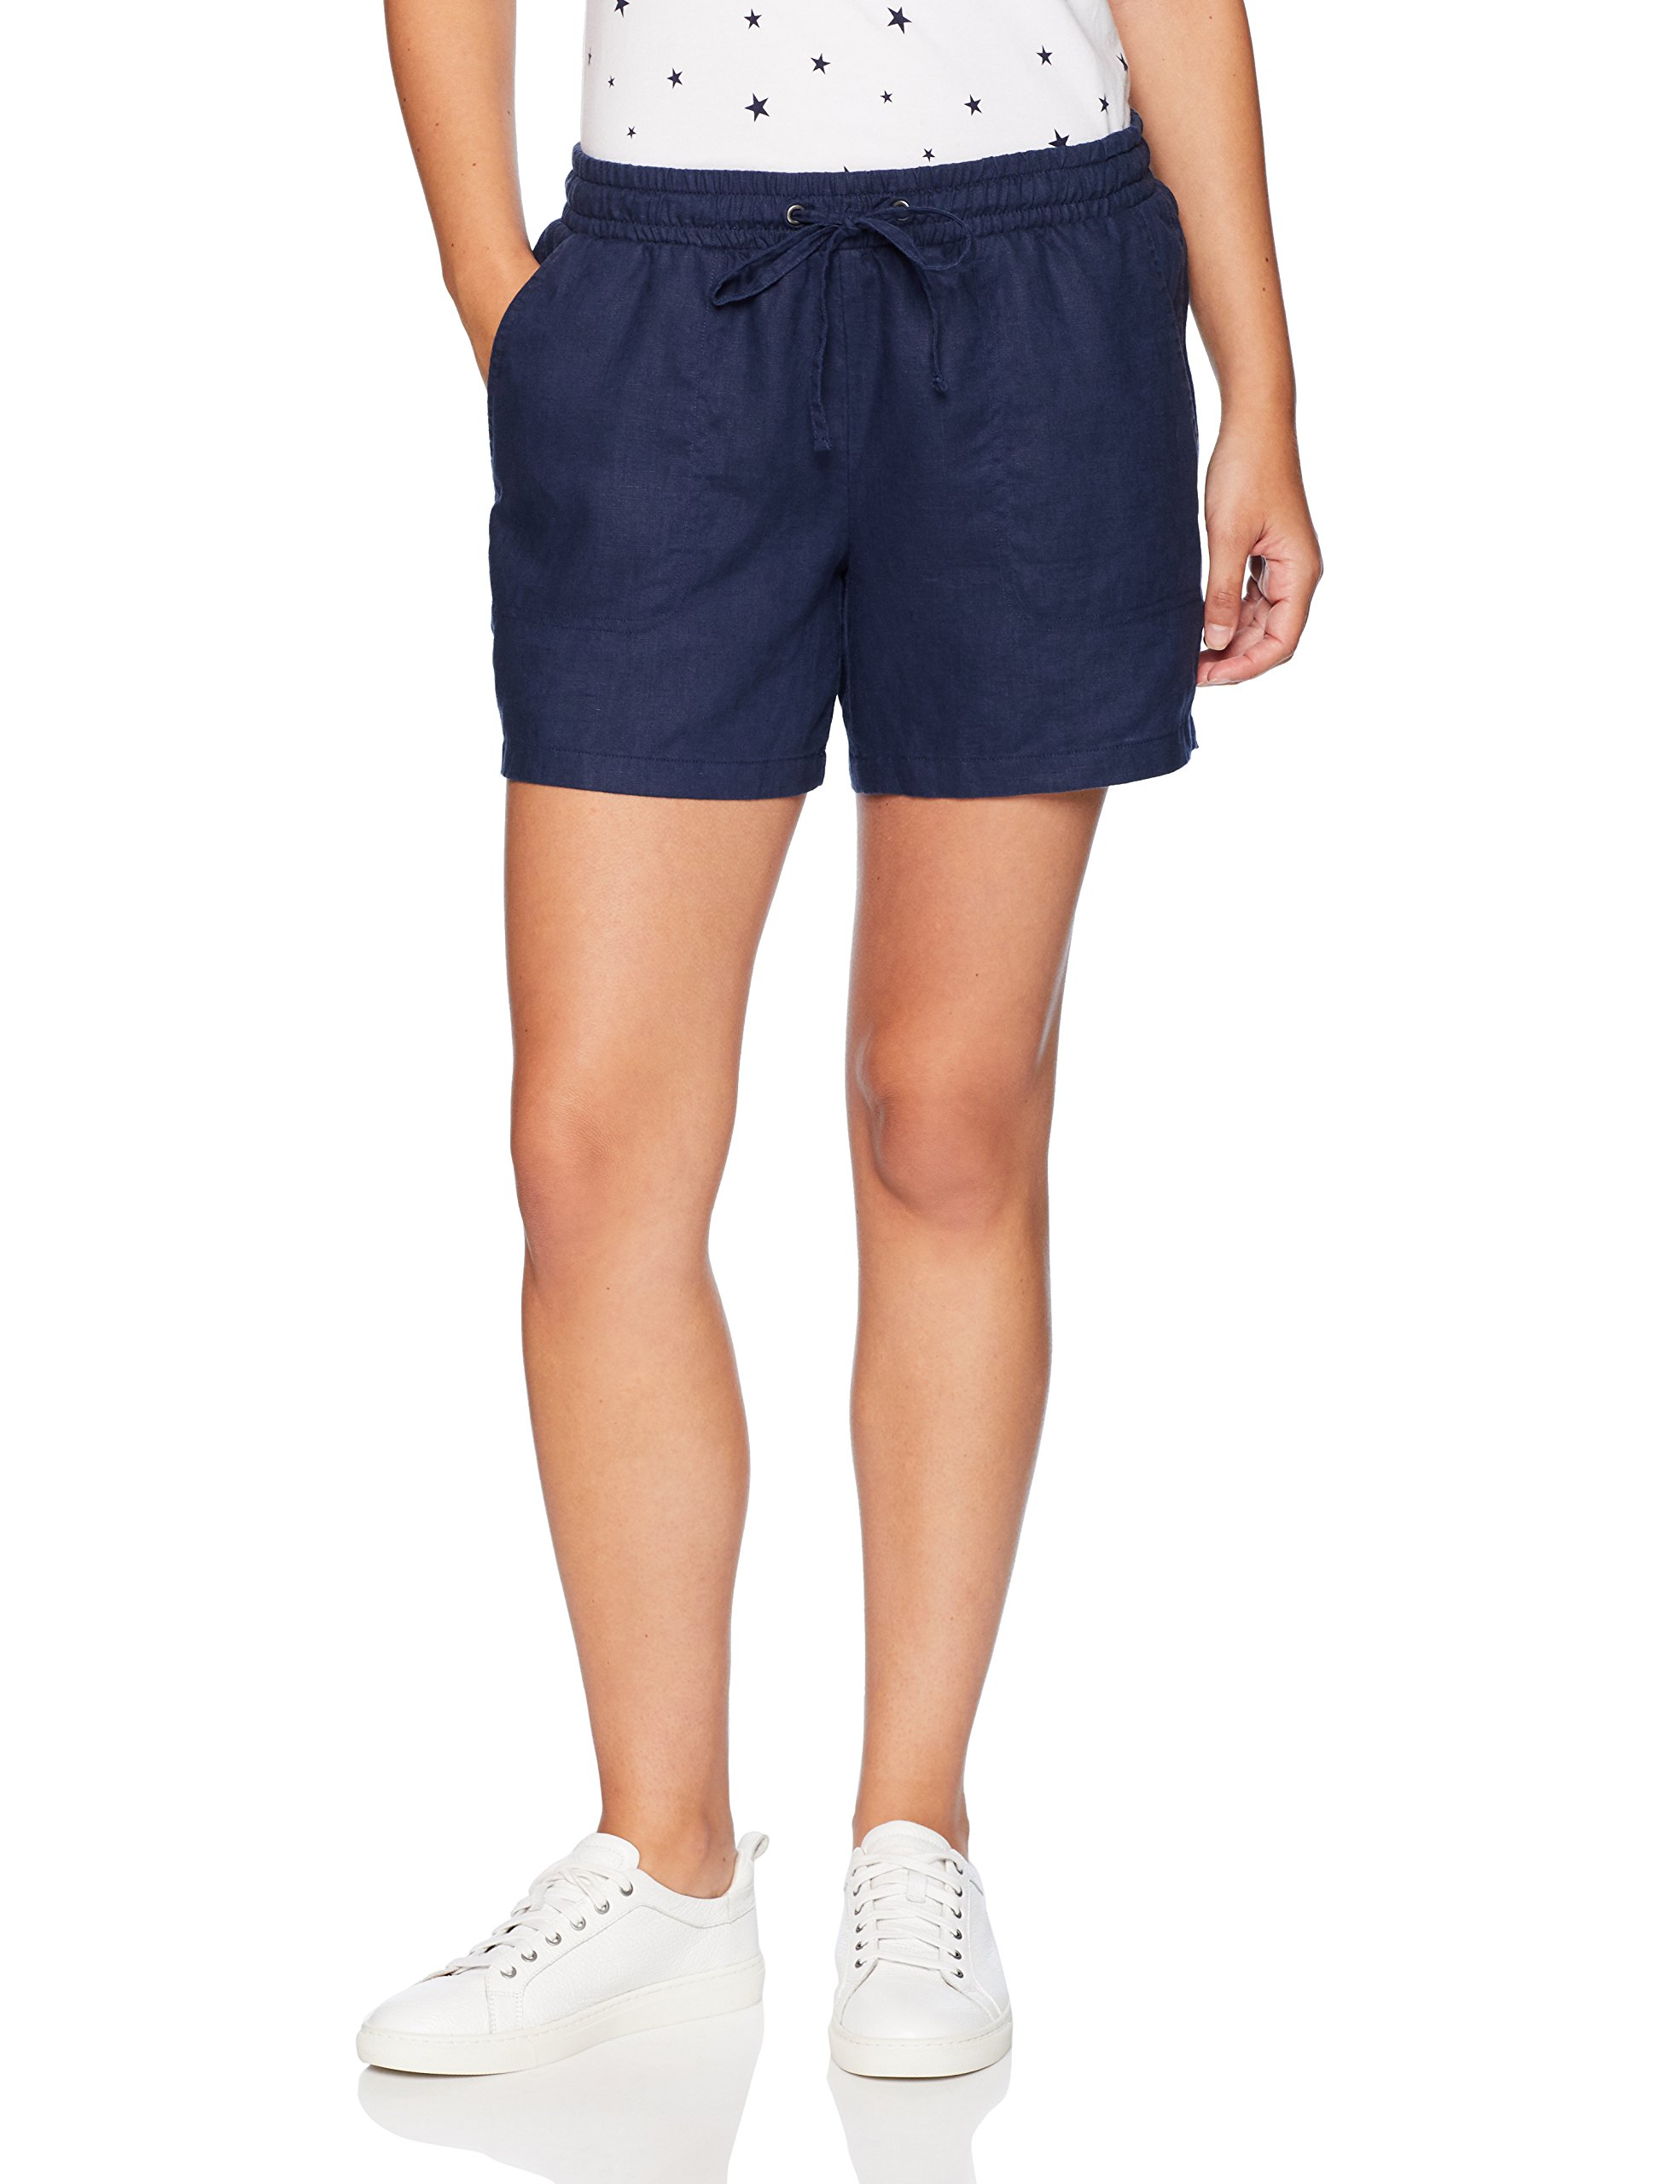 Amazon Essentials Women's 5'' Drawstring Solid Linen Short, Navy, Large